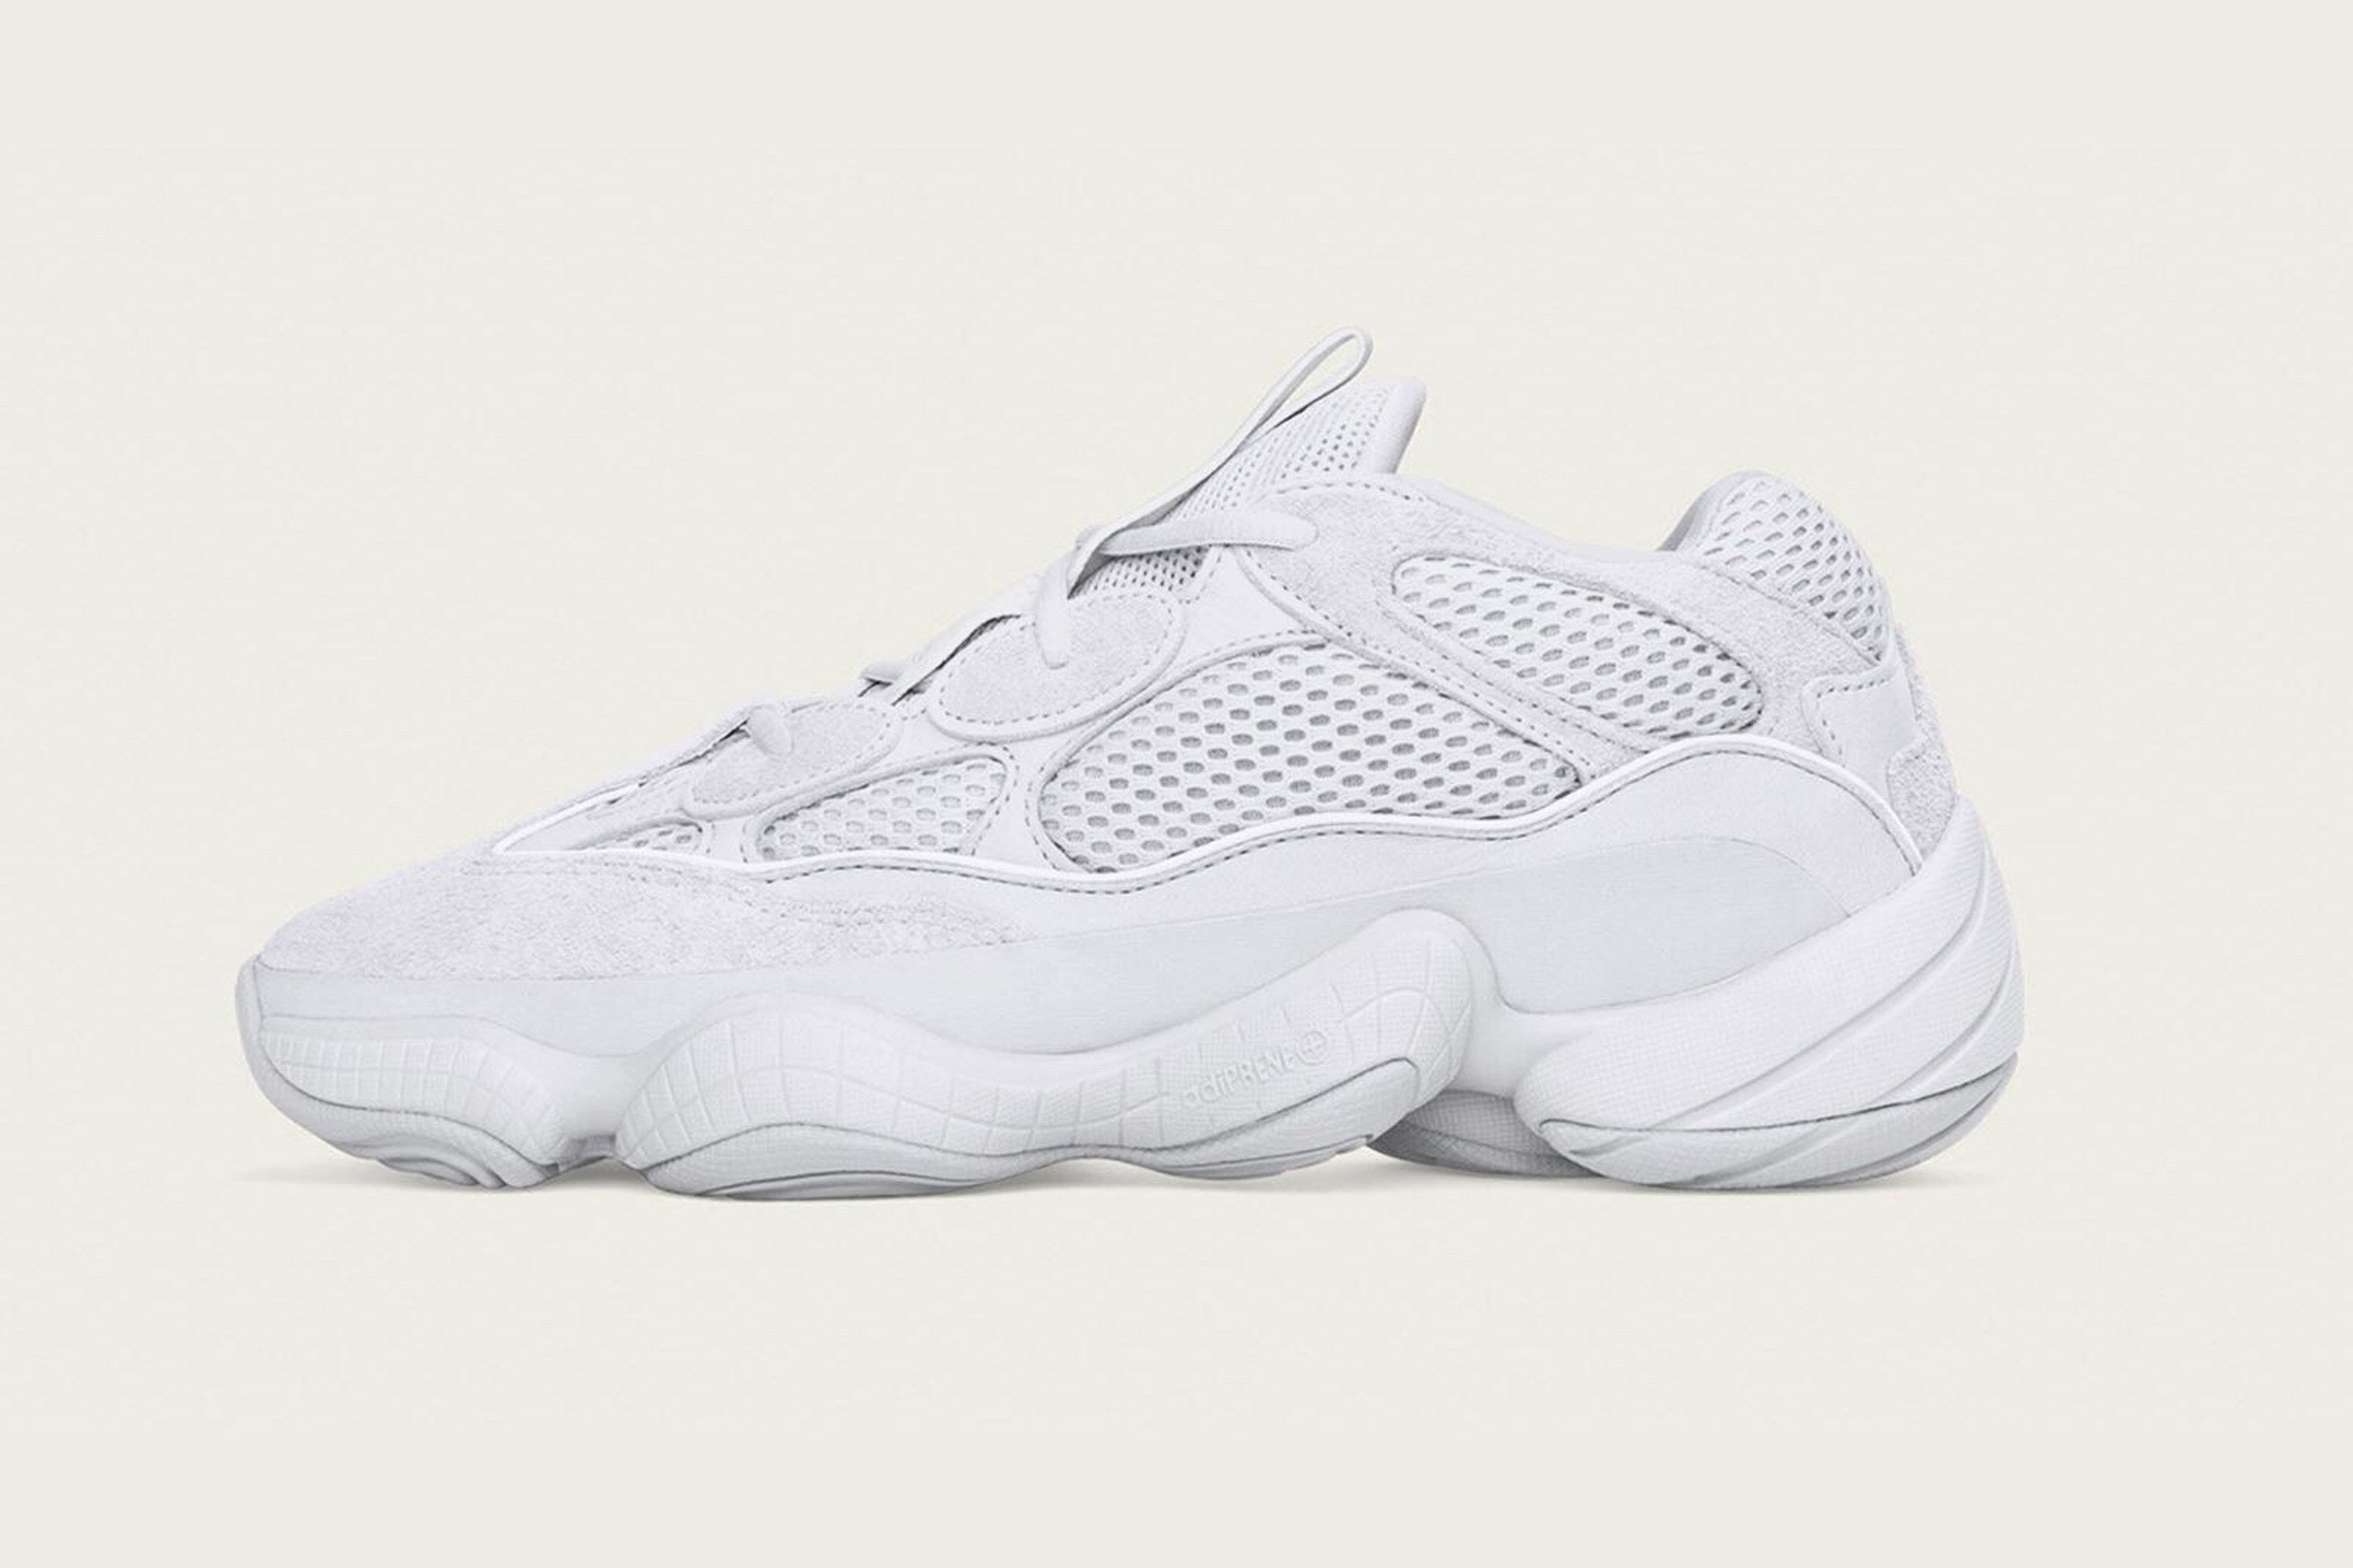 new style 632e6 ba74a adidas YEEZY 500 in Salt White for 2018 - EU Kicks Sneaker Magazine